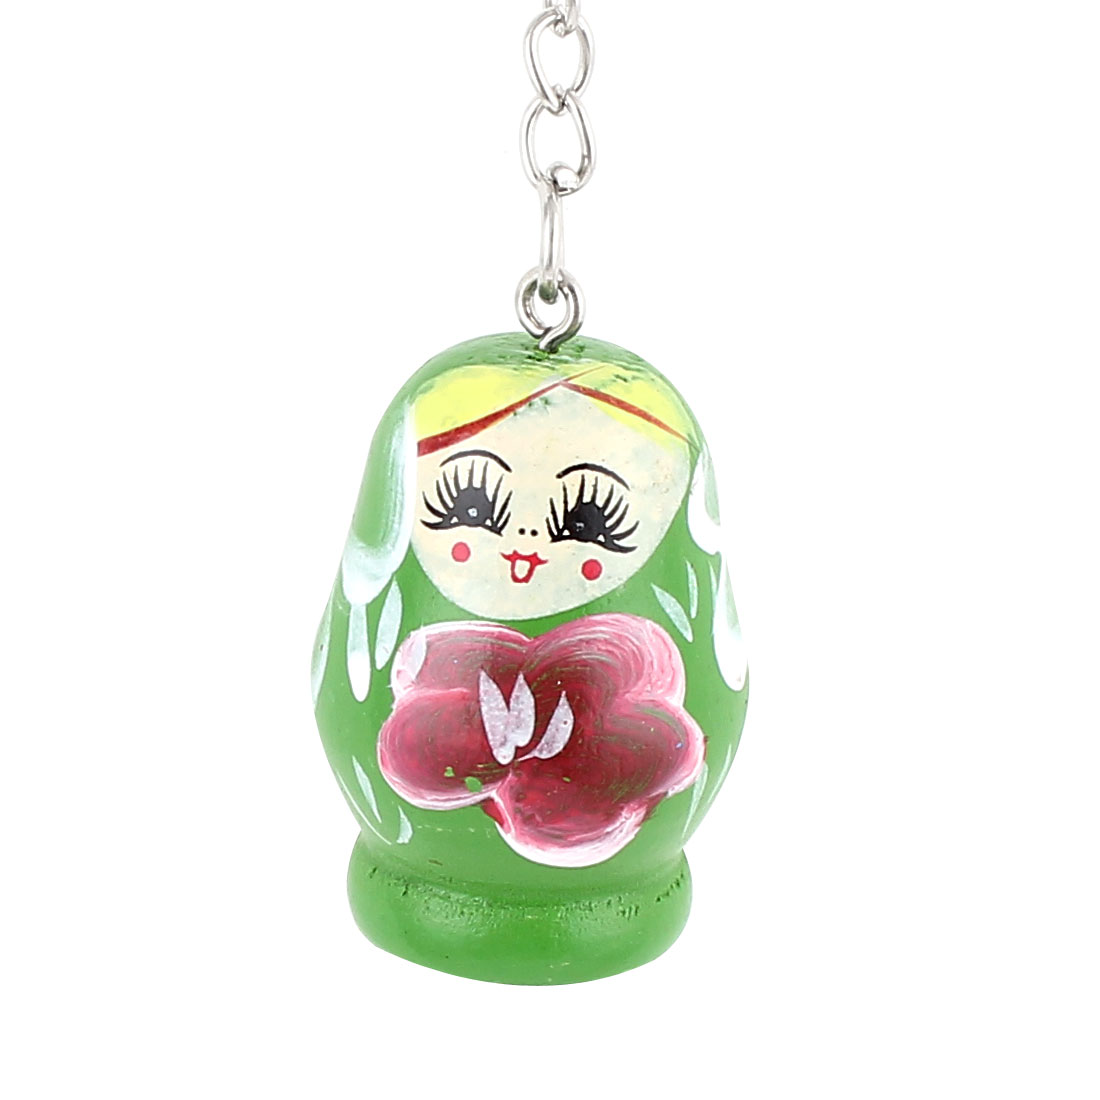 Wooden Matryoshka Style Nesting Doll Key Holder Pendant Keychain Keyring Green